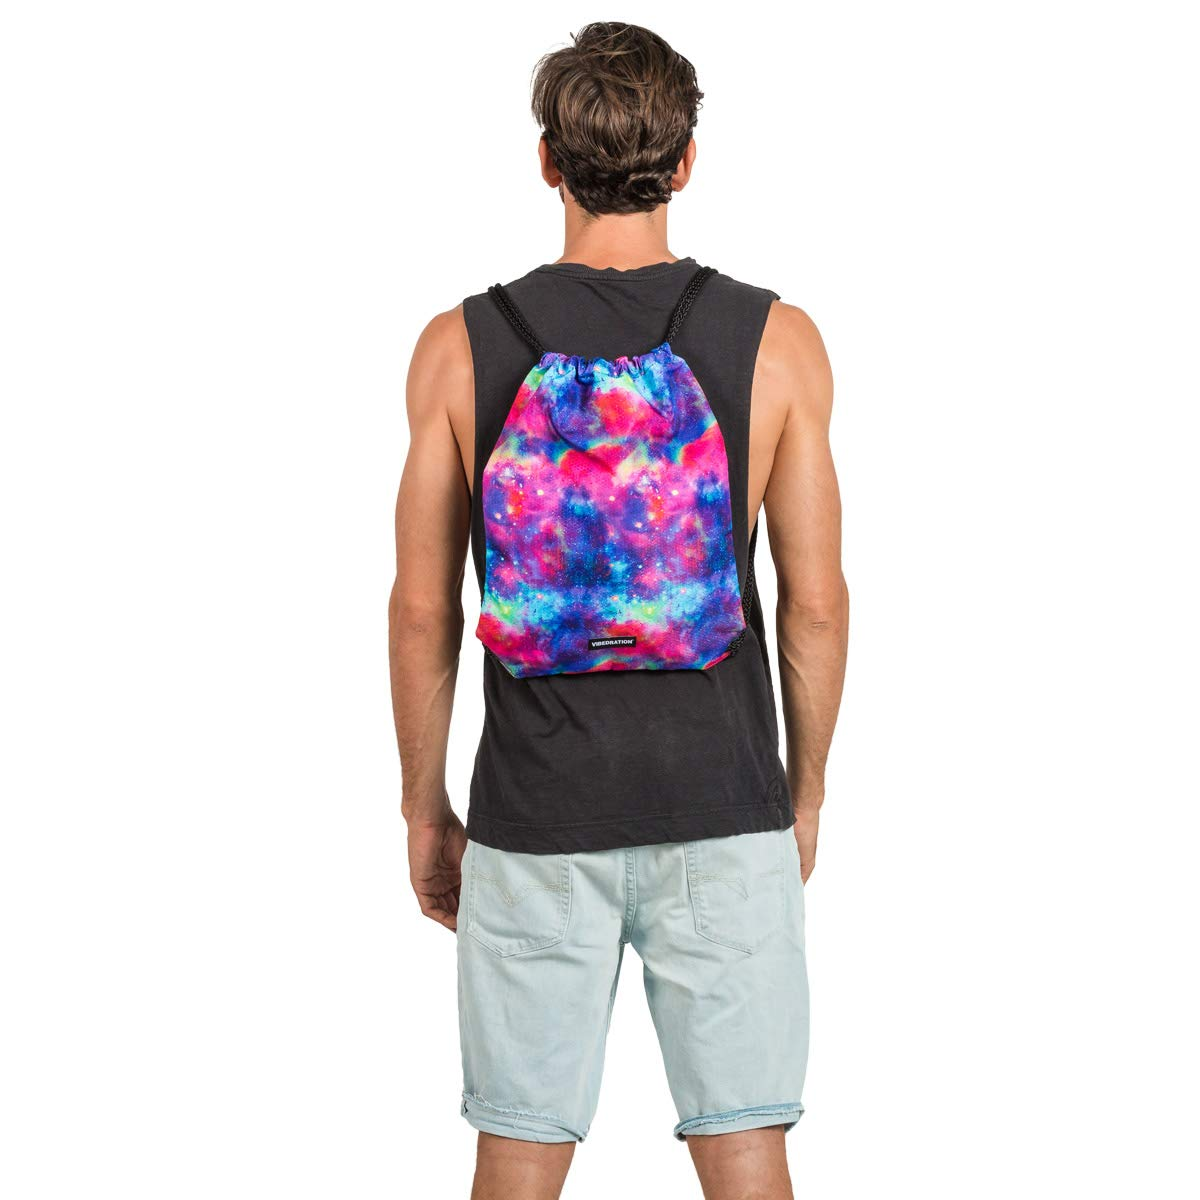 Tie-Dye Sloth Rave /& Travel Accessories Gym Bag Sports Rucksack for Men /& Women Vibedration Drawstring Backpack Festival Fashion Casual Daypack